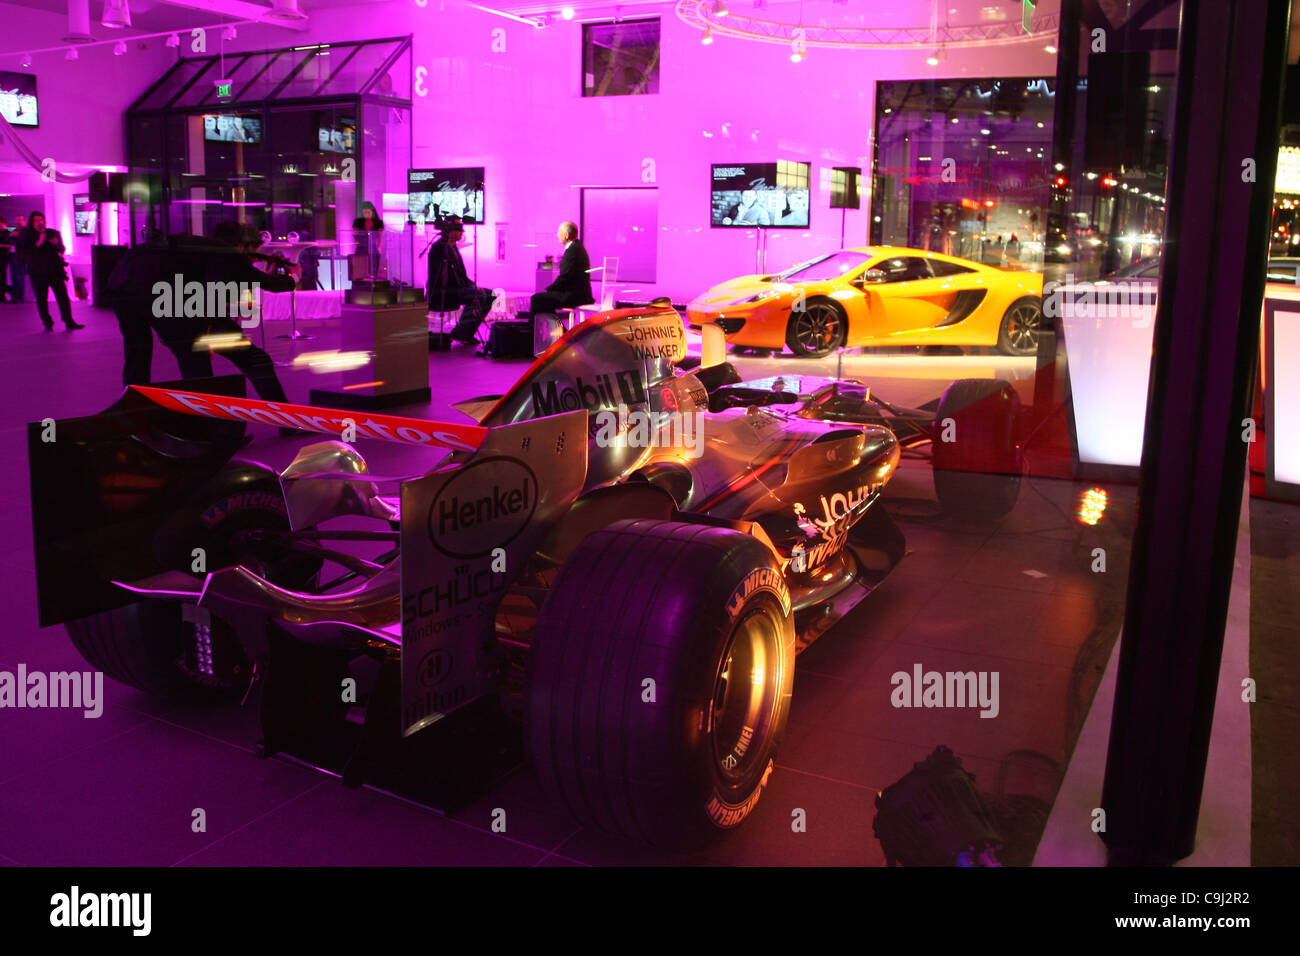 formel 1 auto & mclaren mp4 auto im showroom mclaren beverly hills